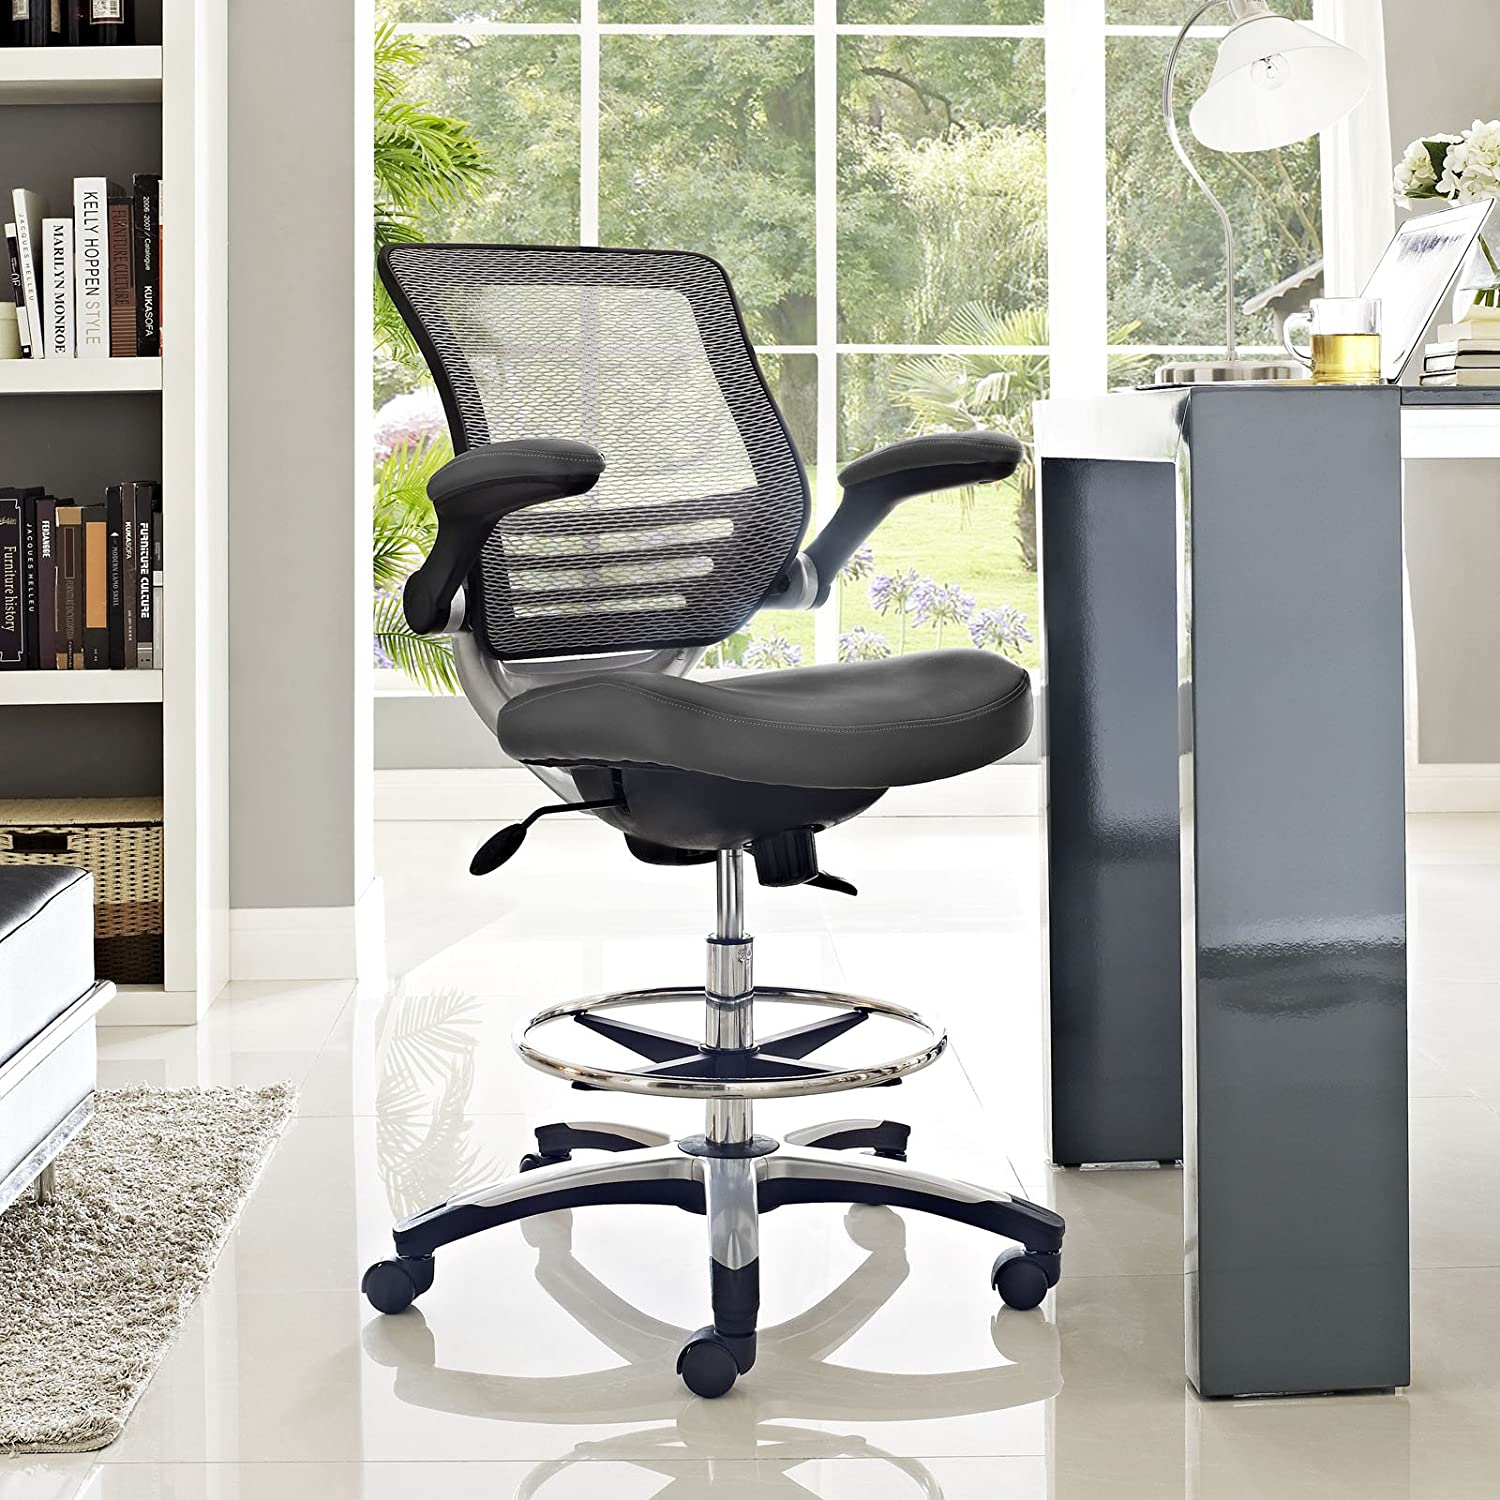 Modway Edge Drafting Chair In Gray – Reception Desk Chair – Tall Office Chair For Adjustable Standing Desks – Flip-Up Arm Drafting Table Chair